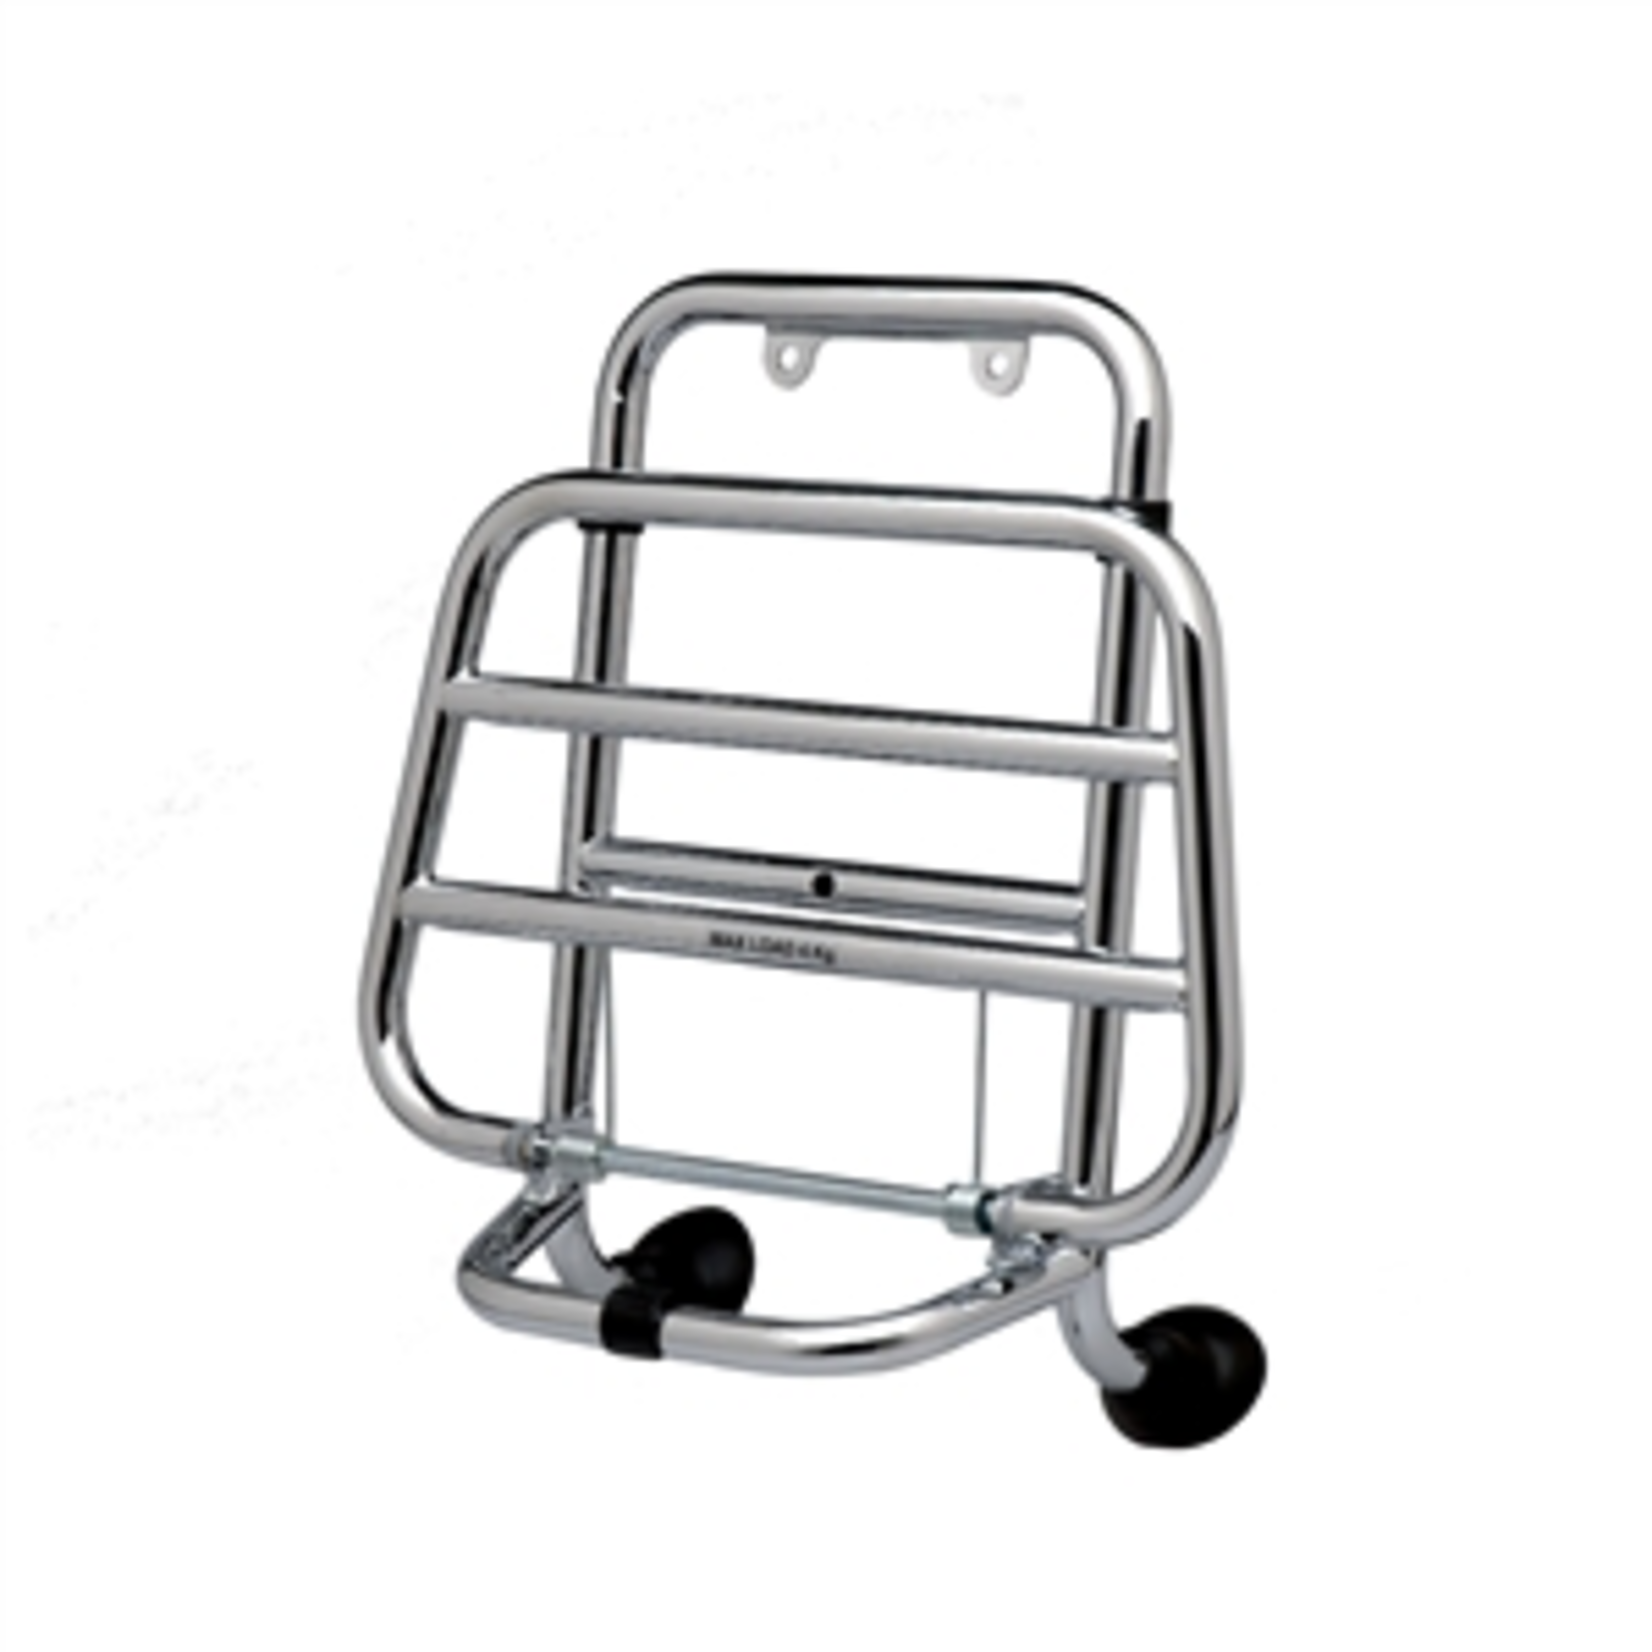 Accessories Rack, Front GTS/GTV/GT60 Chrome